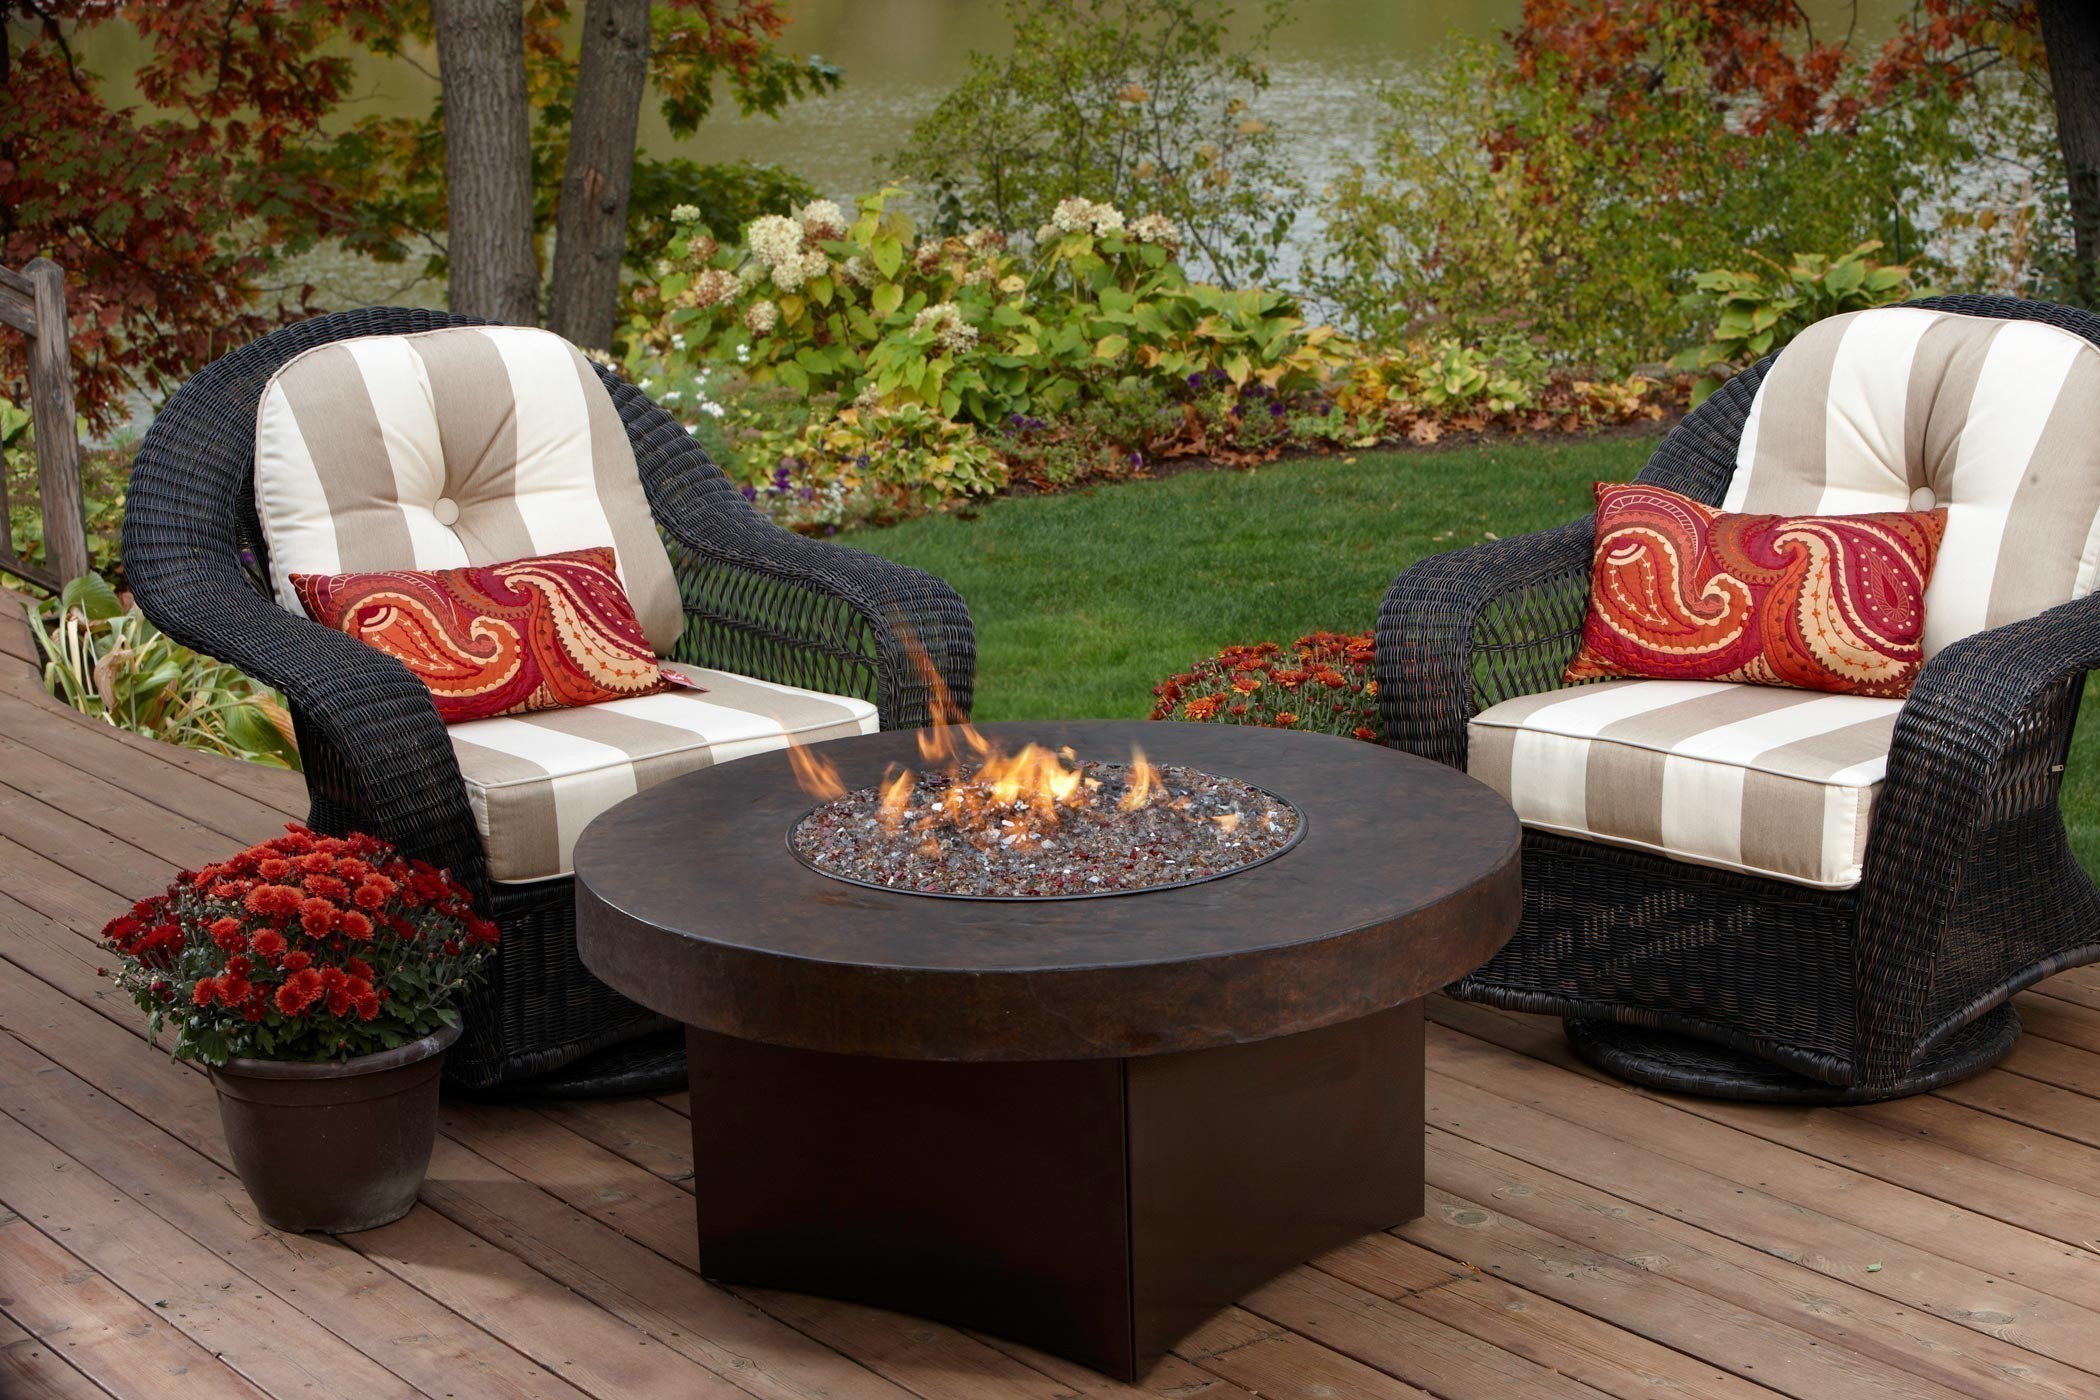 Charleston chairs with Oriflamme fire table